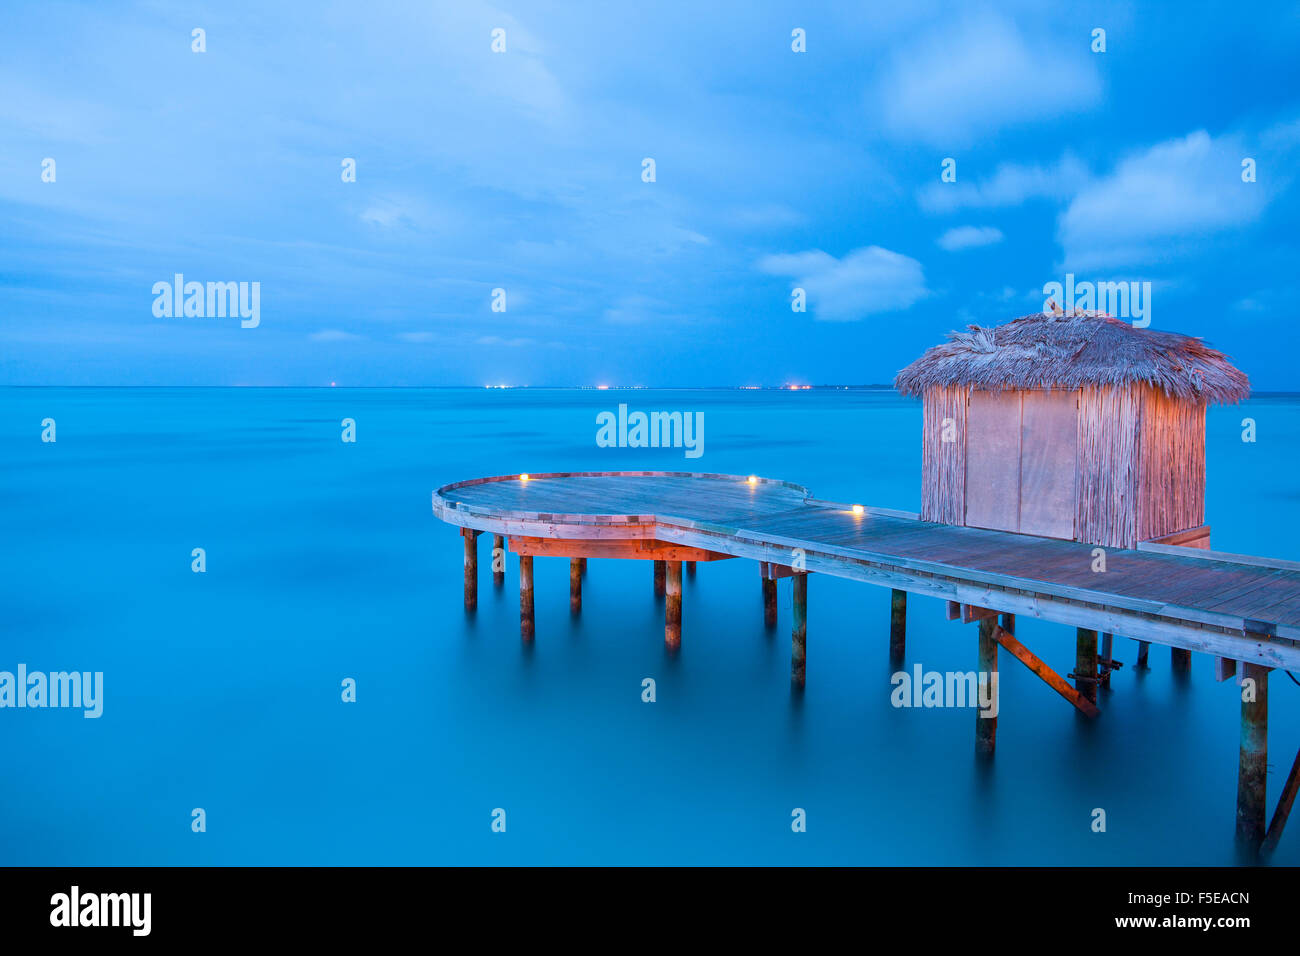 Pier and hut, Maldives, Indian Ocean, Asia - Stock Image